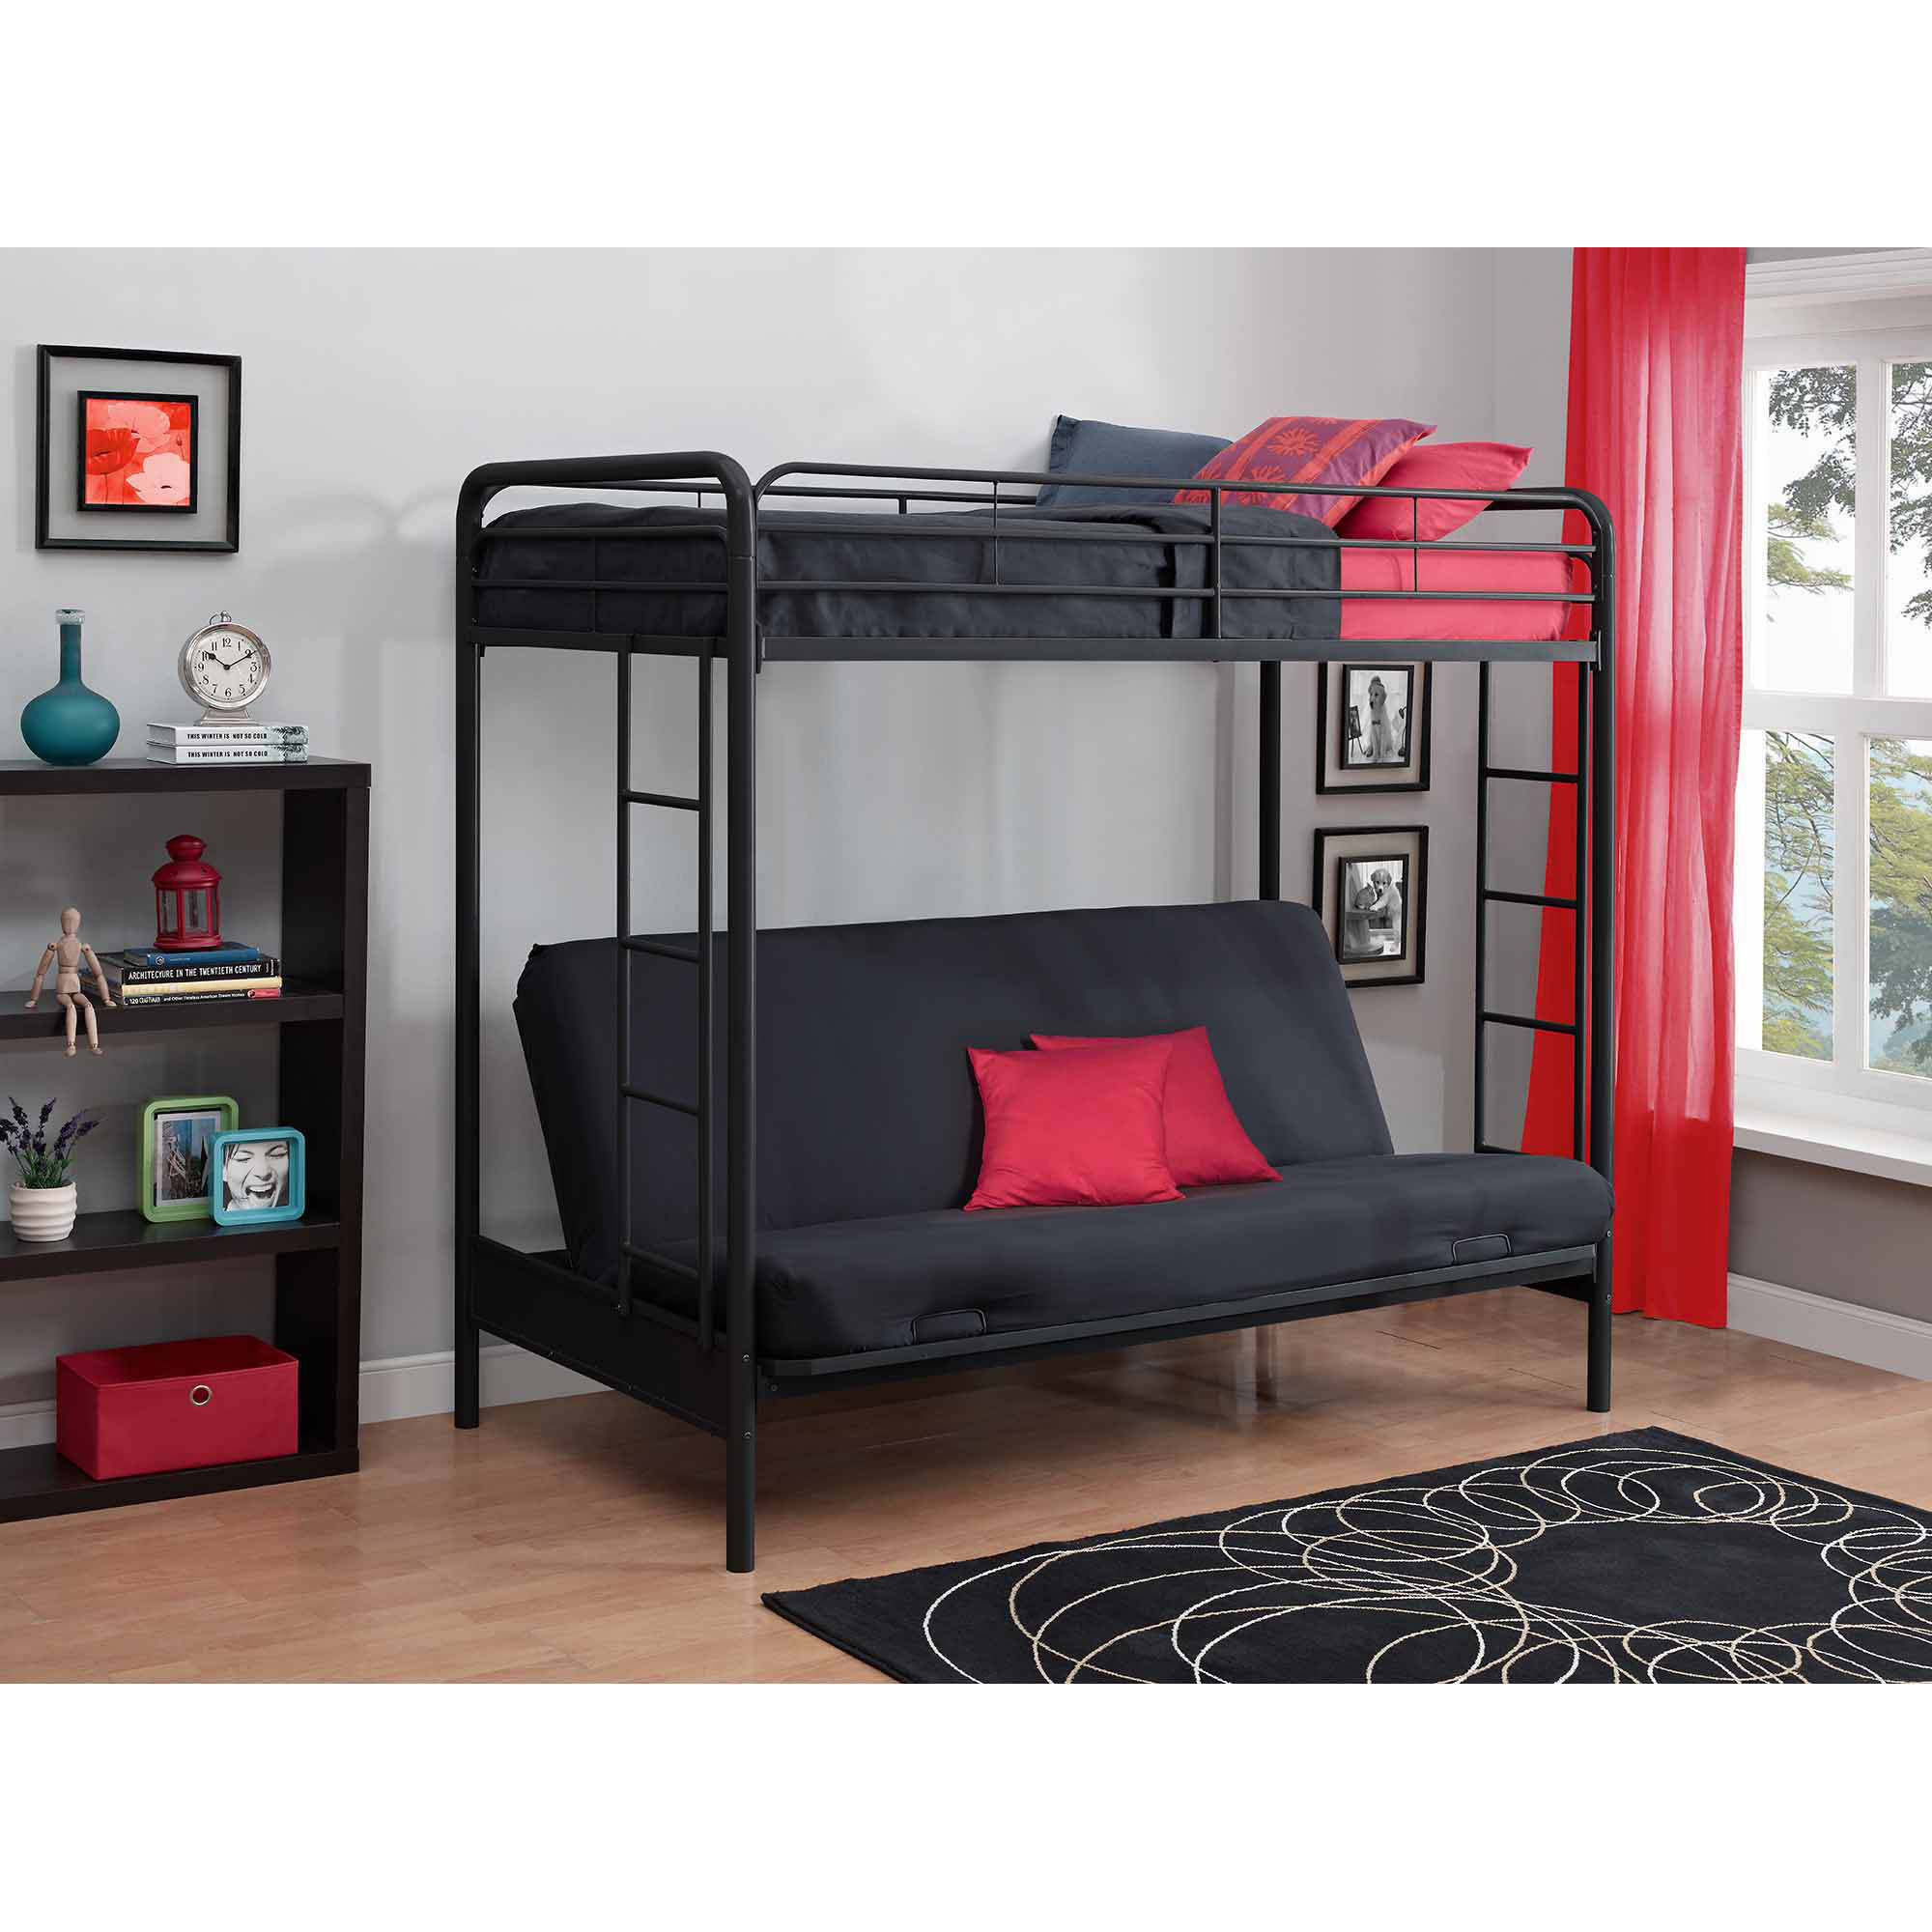 Metal bunk bed with slide - Metal Bunk Bed With Slide 4